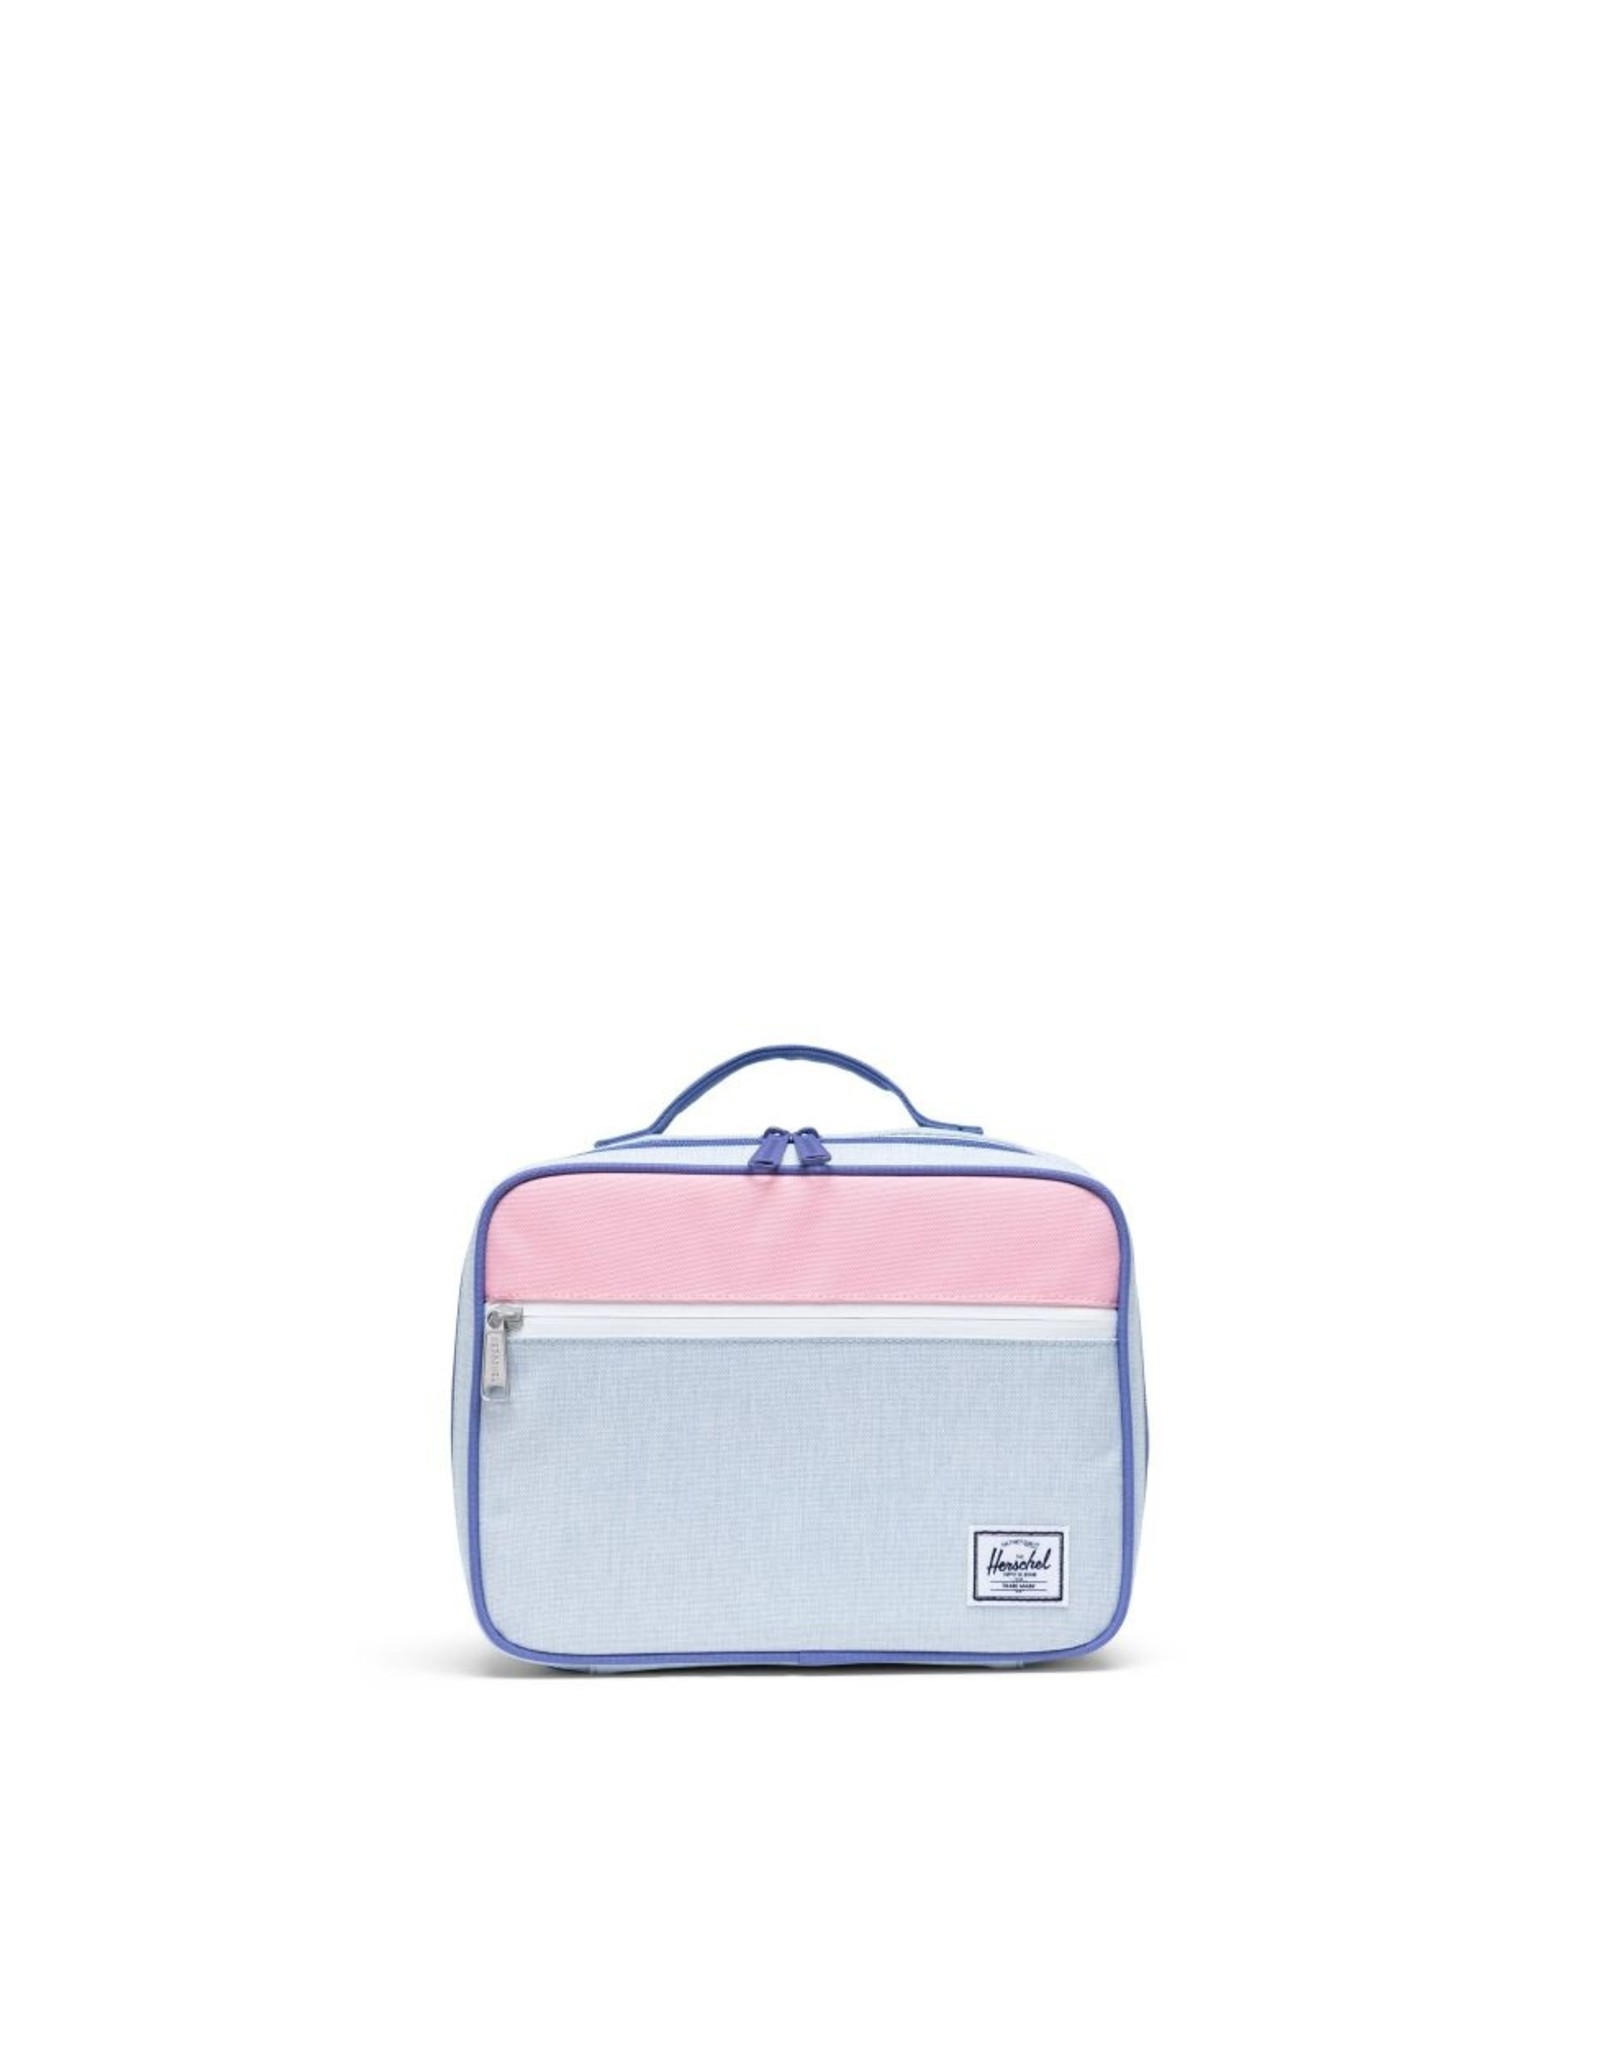 Herschel Supply Co. FA20 Pastel Lunch Box